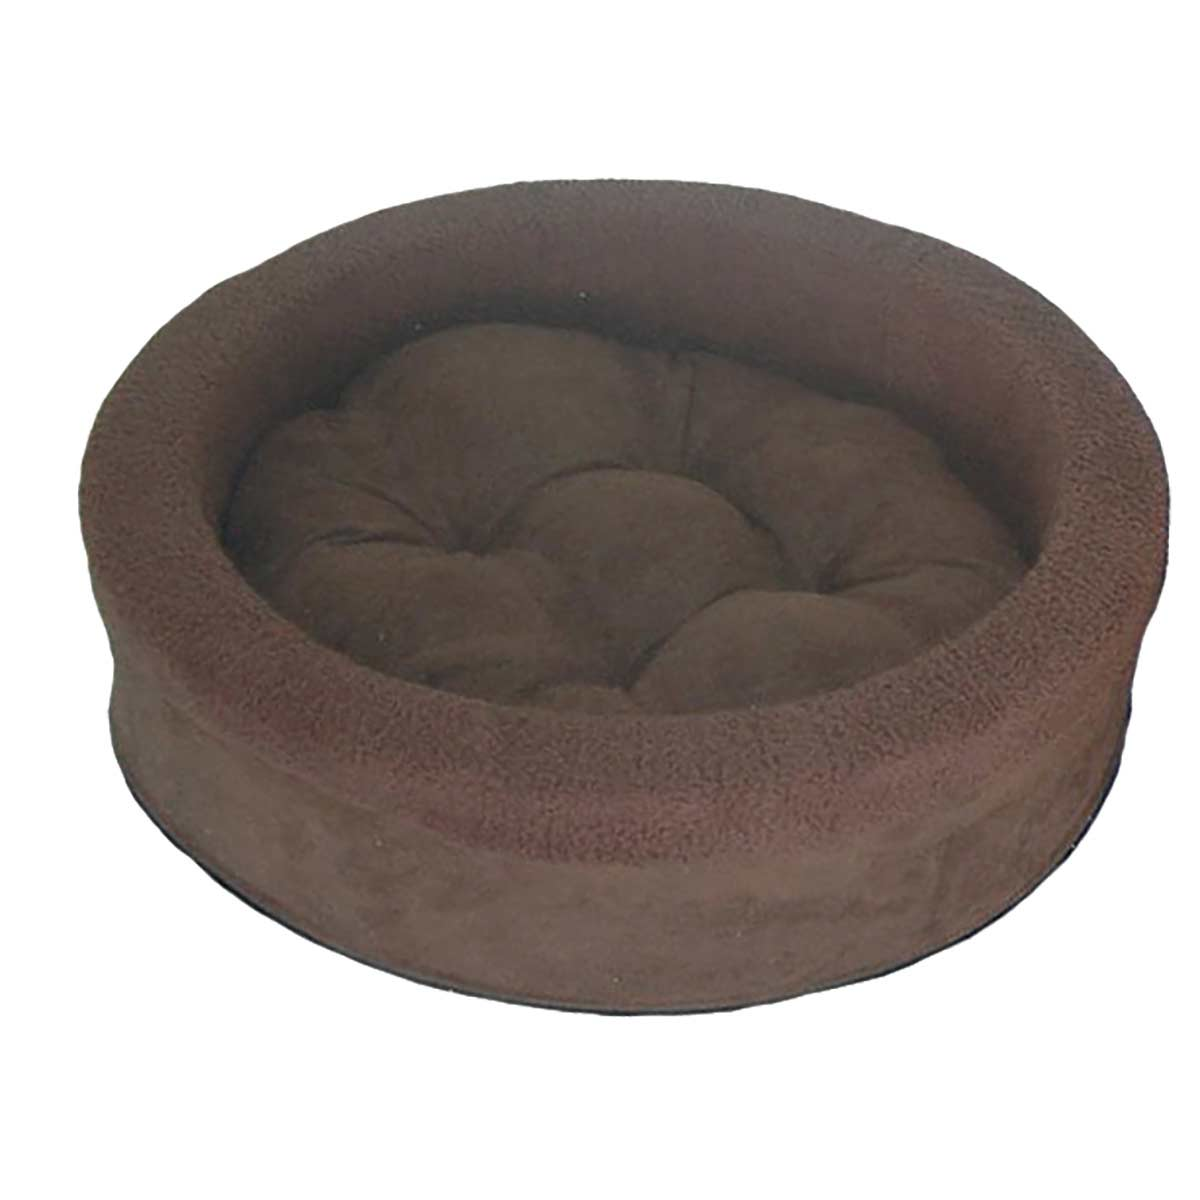 Furhaven Espresso Snuggle Terry Cup Pet Bed at Ryan's Pet Supplies